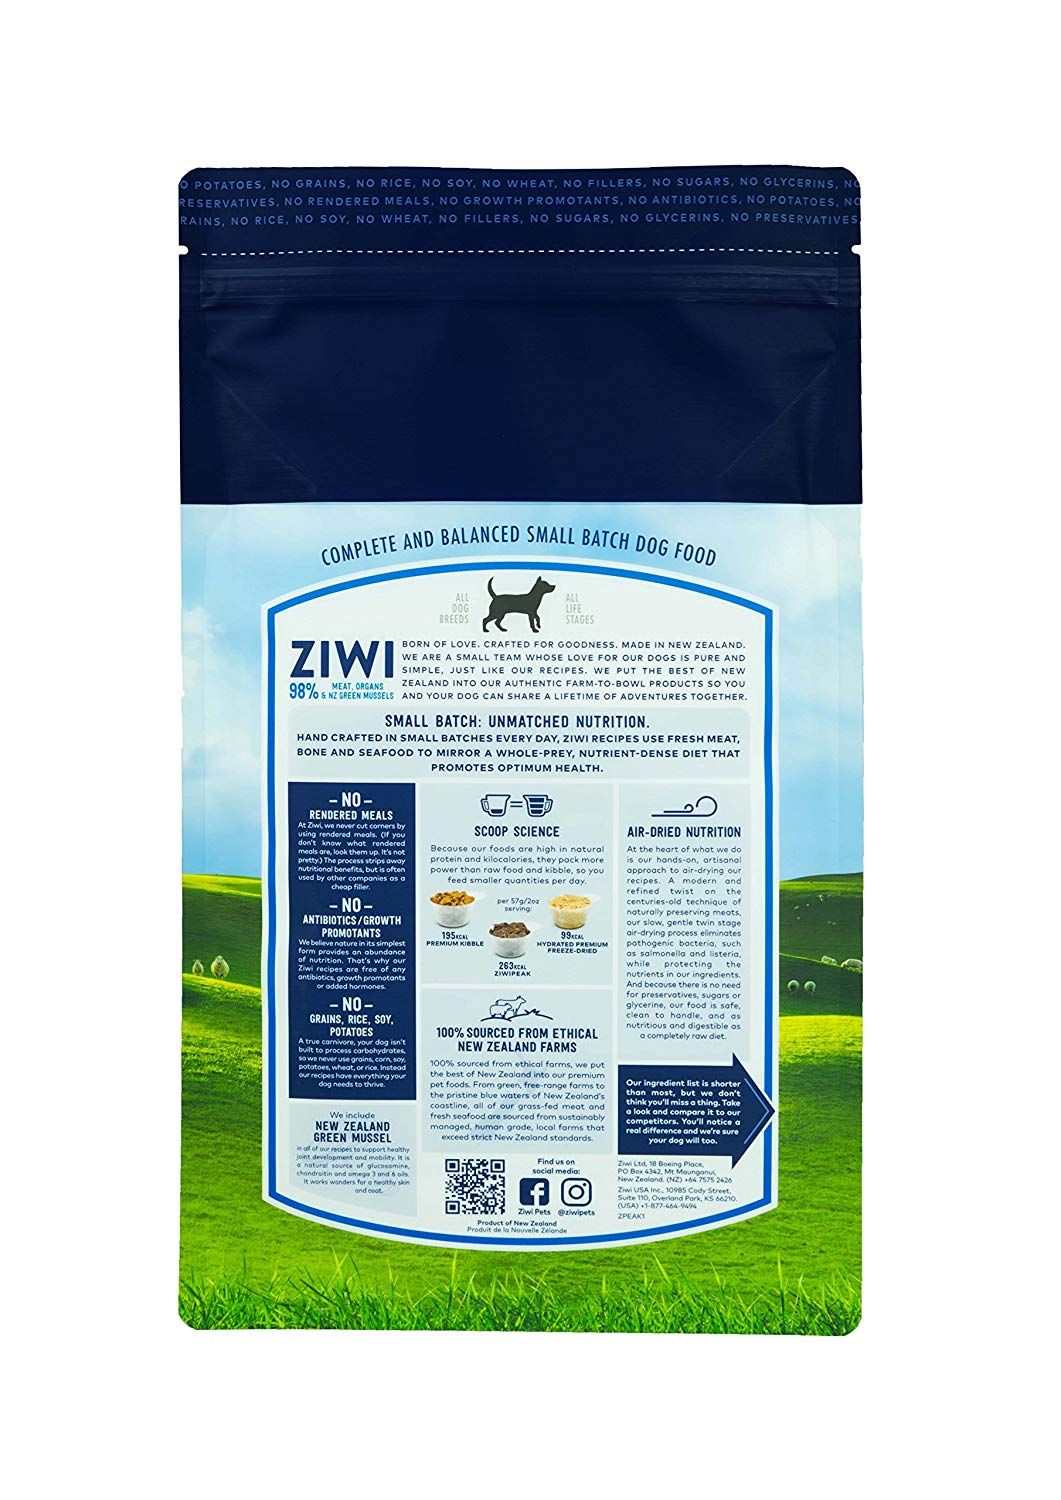 Ziwipeak Air Dried Dog Cuisine Find Out More About The Great